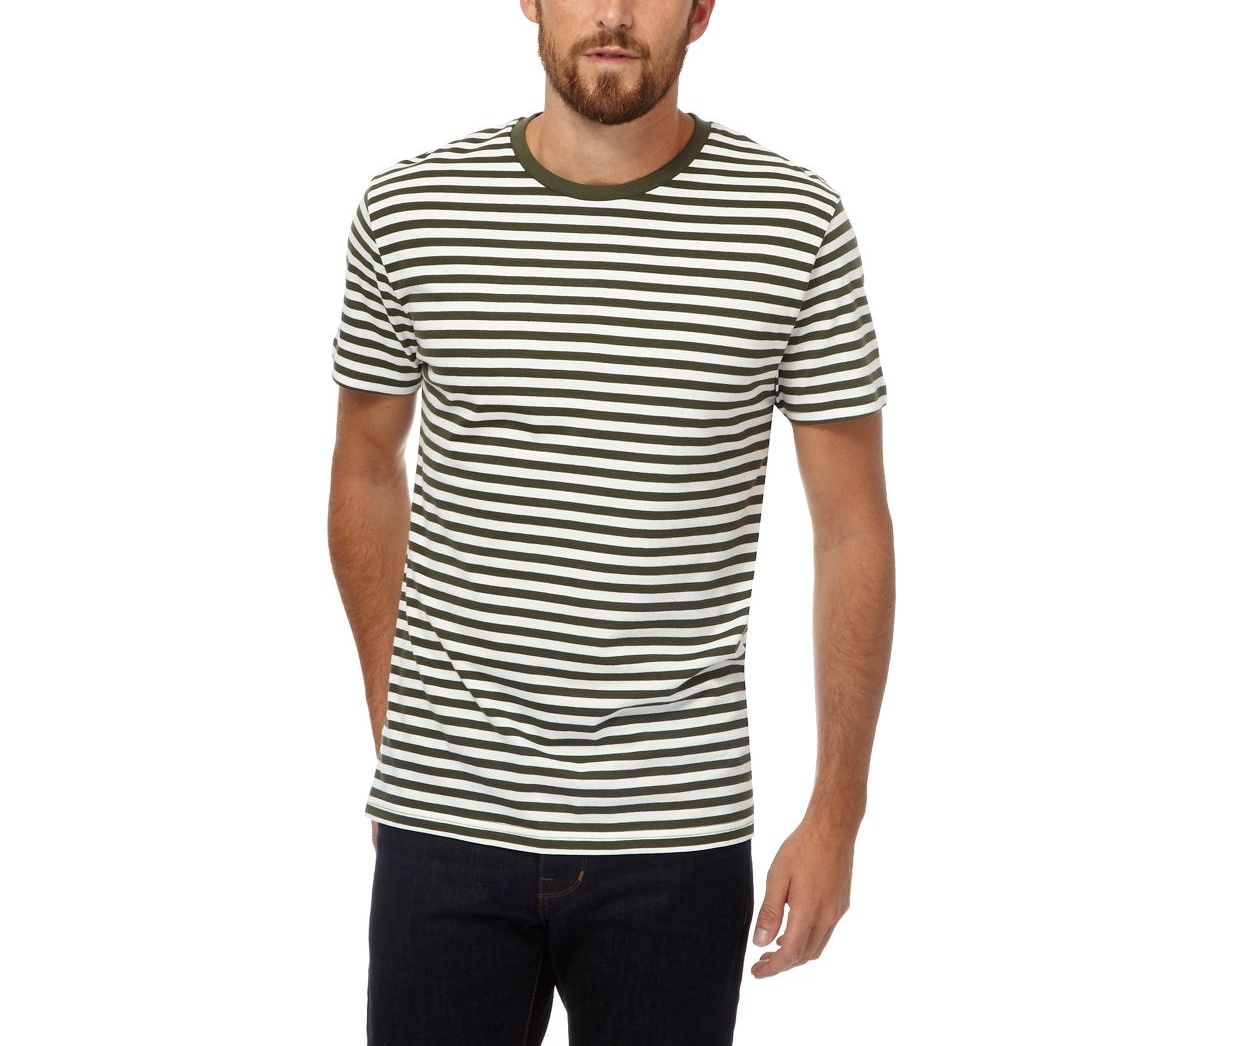 J by Jasper Conran Khaki Big and tall white and khaki striped t-shirt